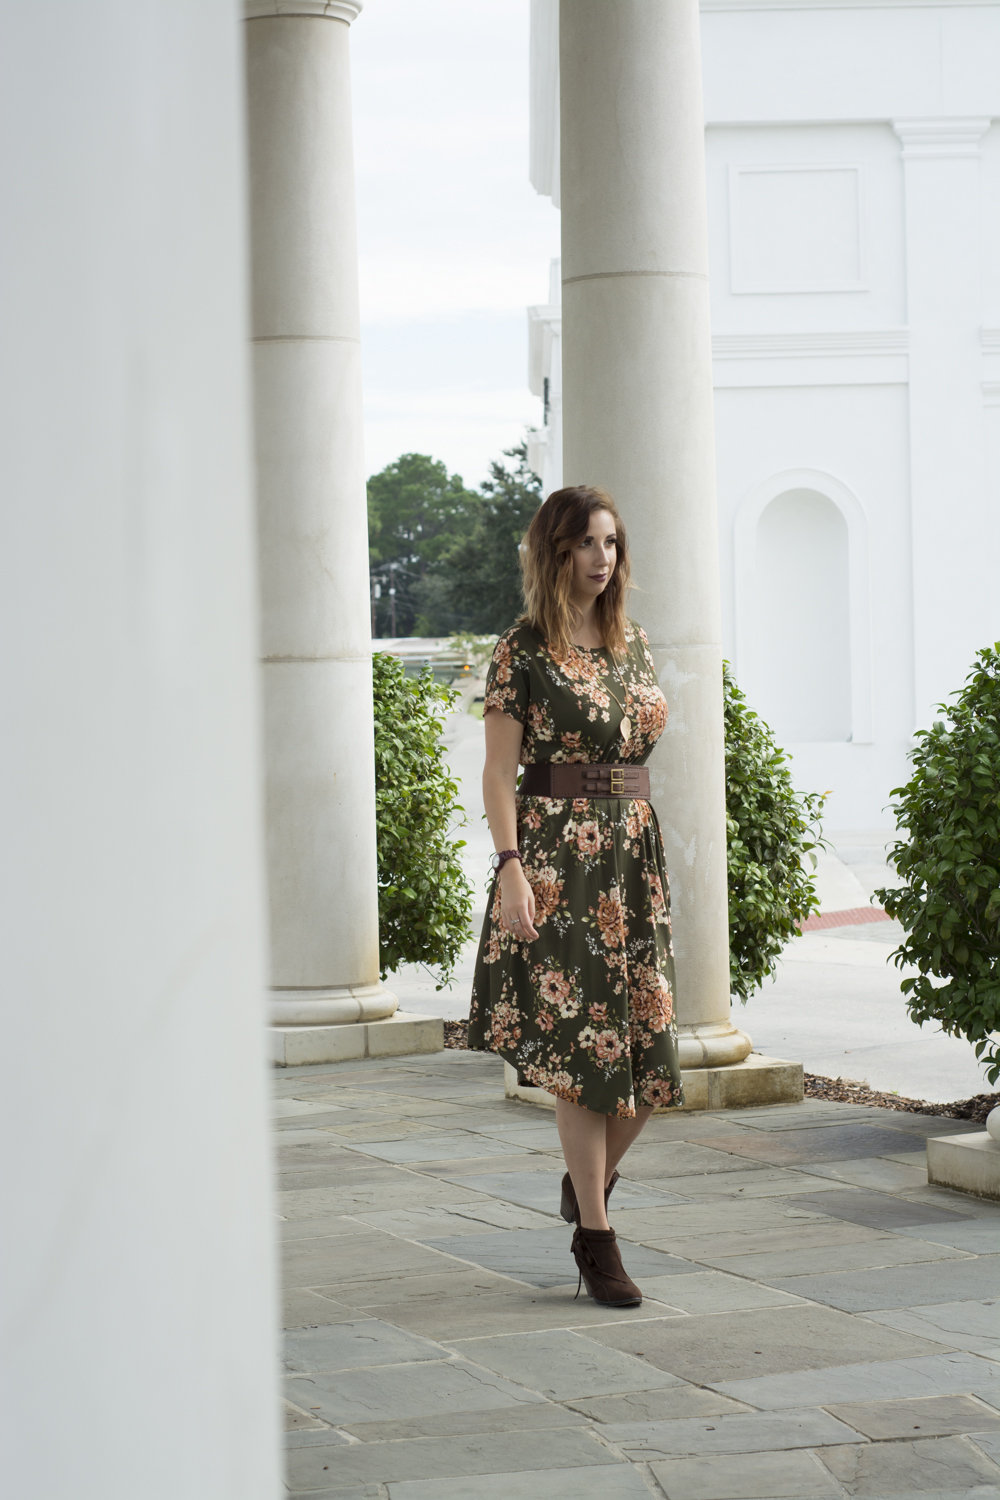 Autumn Fashion Find: Fall Floral Dress. Sharing tips and tricks on how to style a fall floral dress. This green floral dress is perfect for fall and pairs great with brown booties and subtle accessories // Hey There, Chelsie